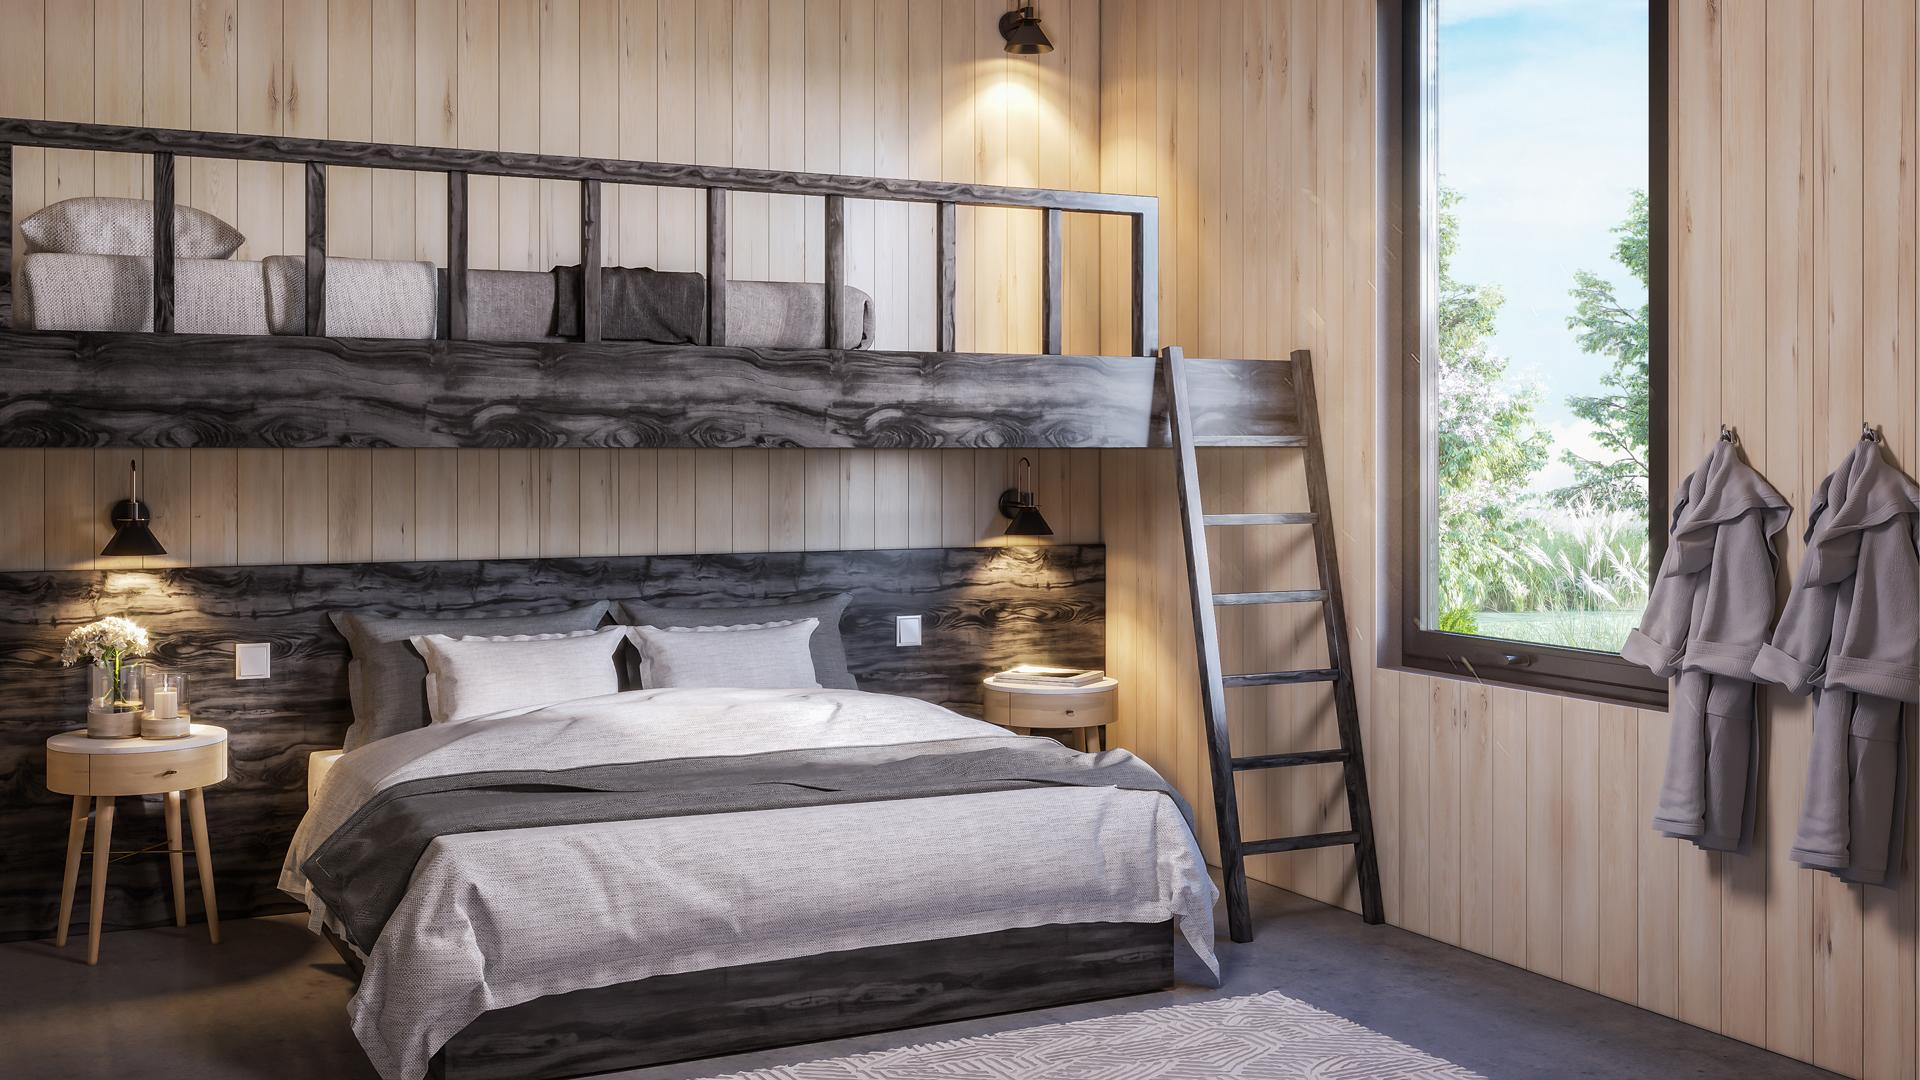 Ontario's coolest cabins to rent | A bunk bed inside a cabin at Wander resort in Prince Edward County, Ontario